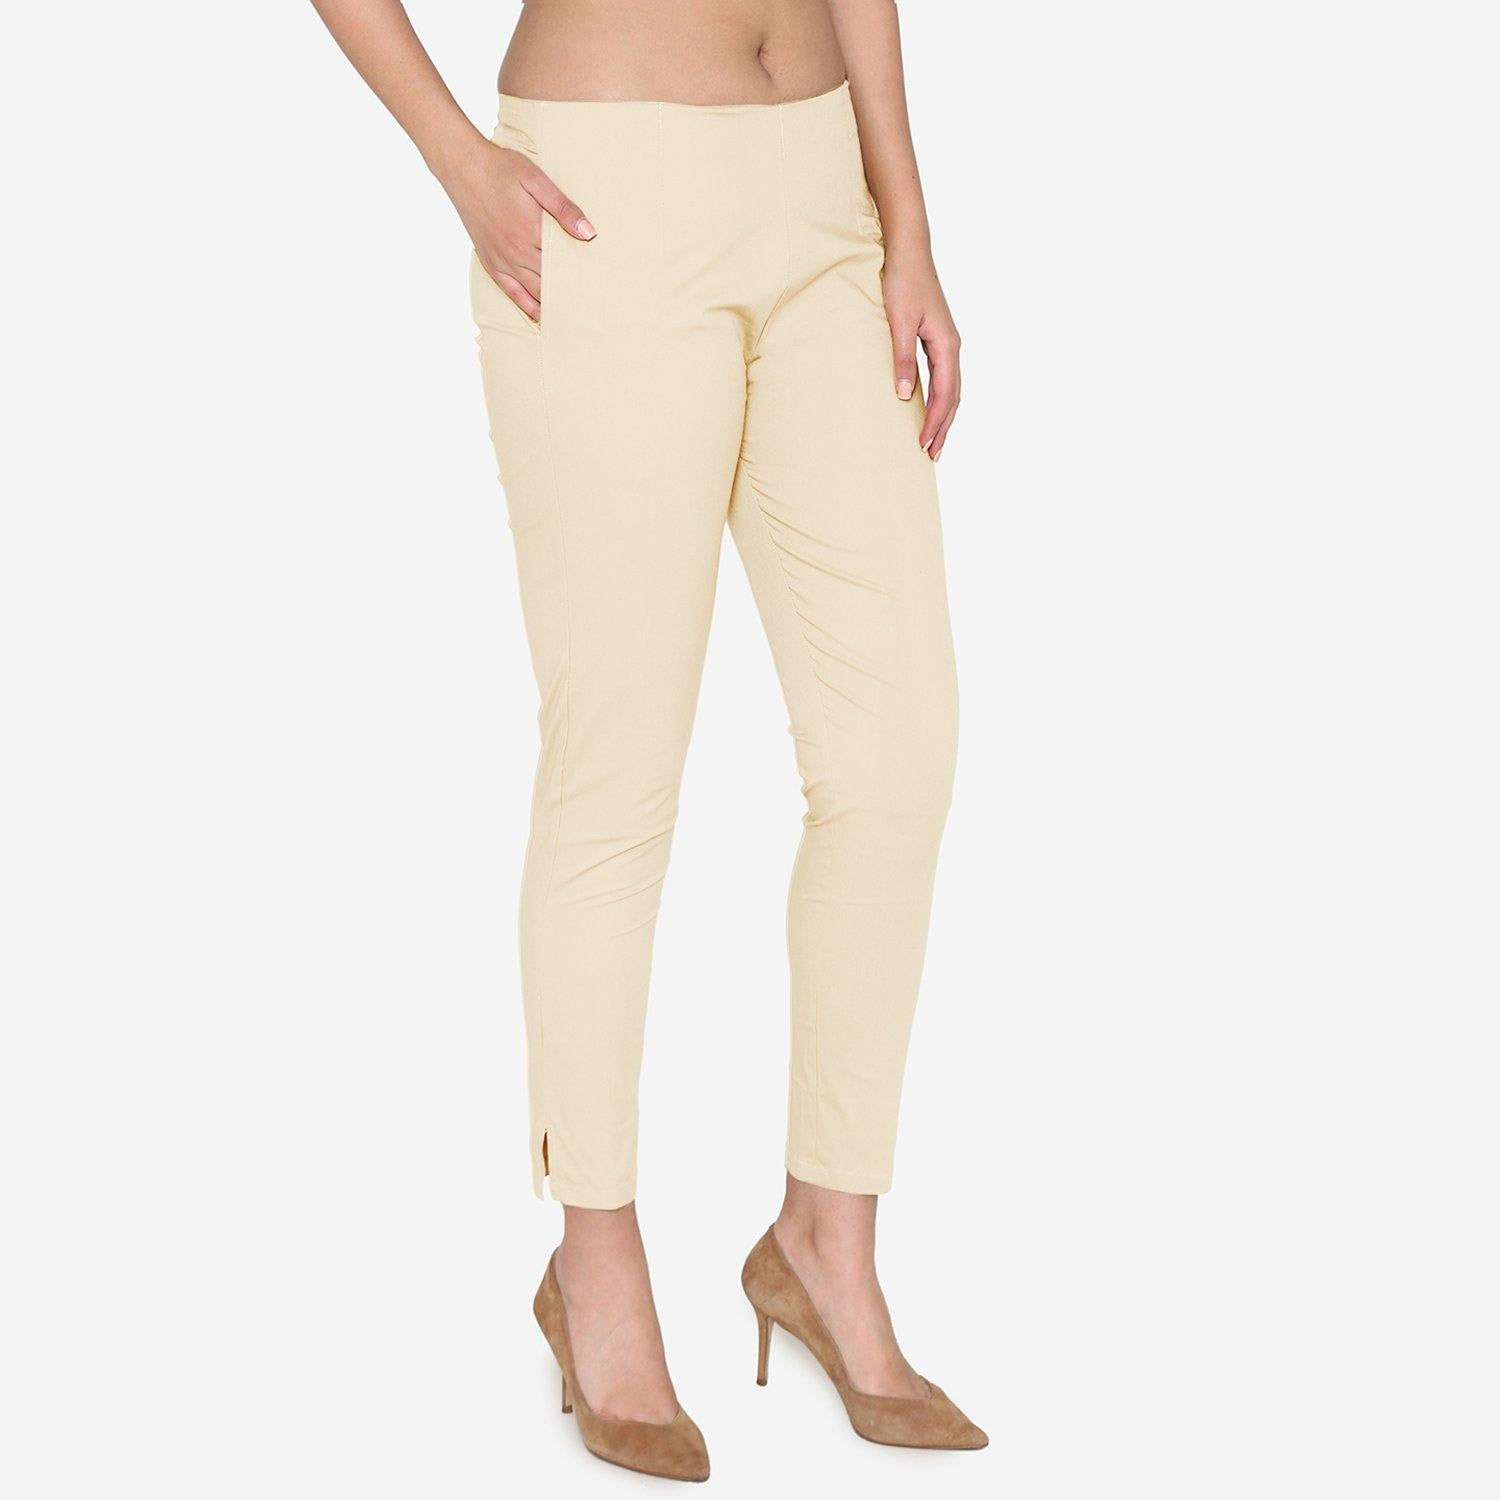 Women's Cotton Formal Trousers